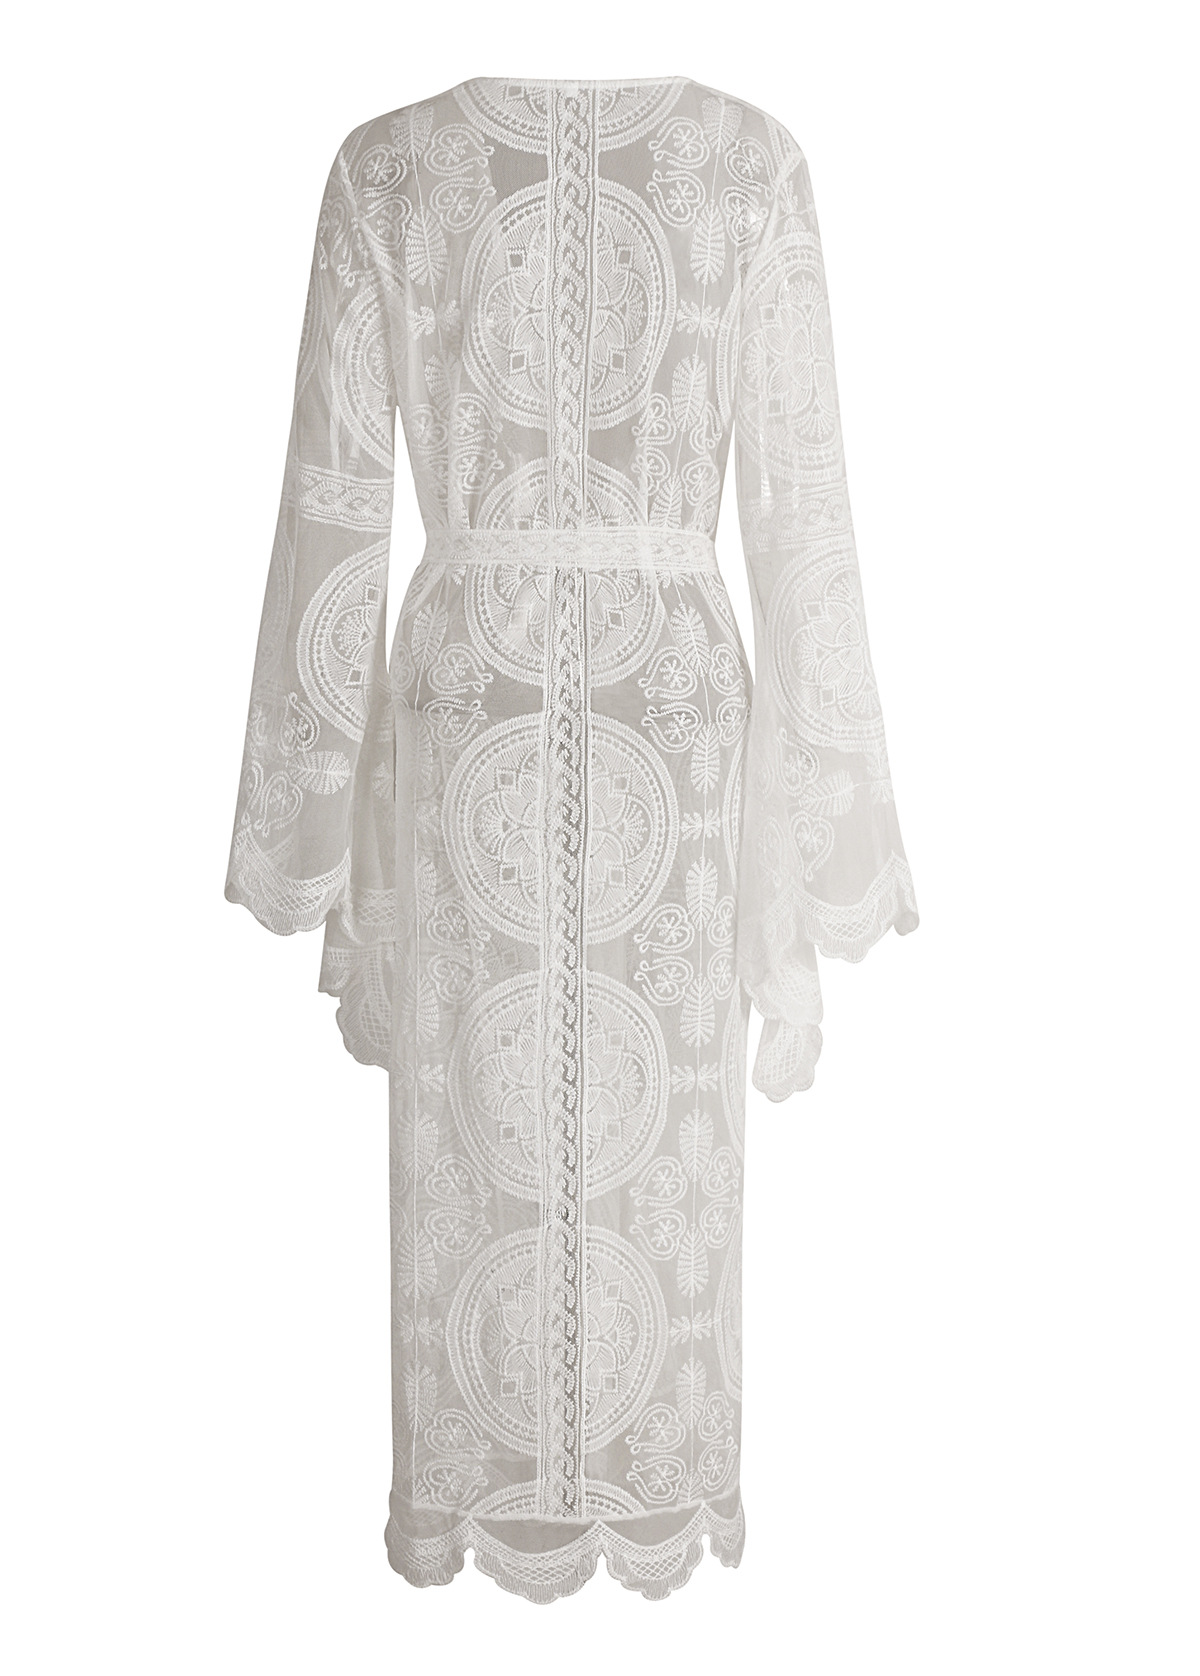 Vacation style lace cardigan long dress NHDF121878